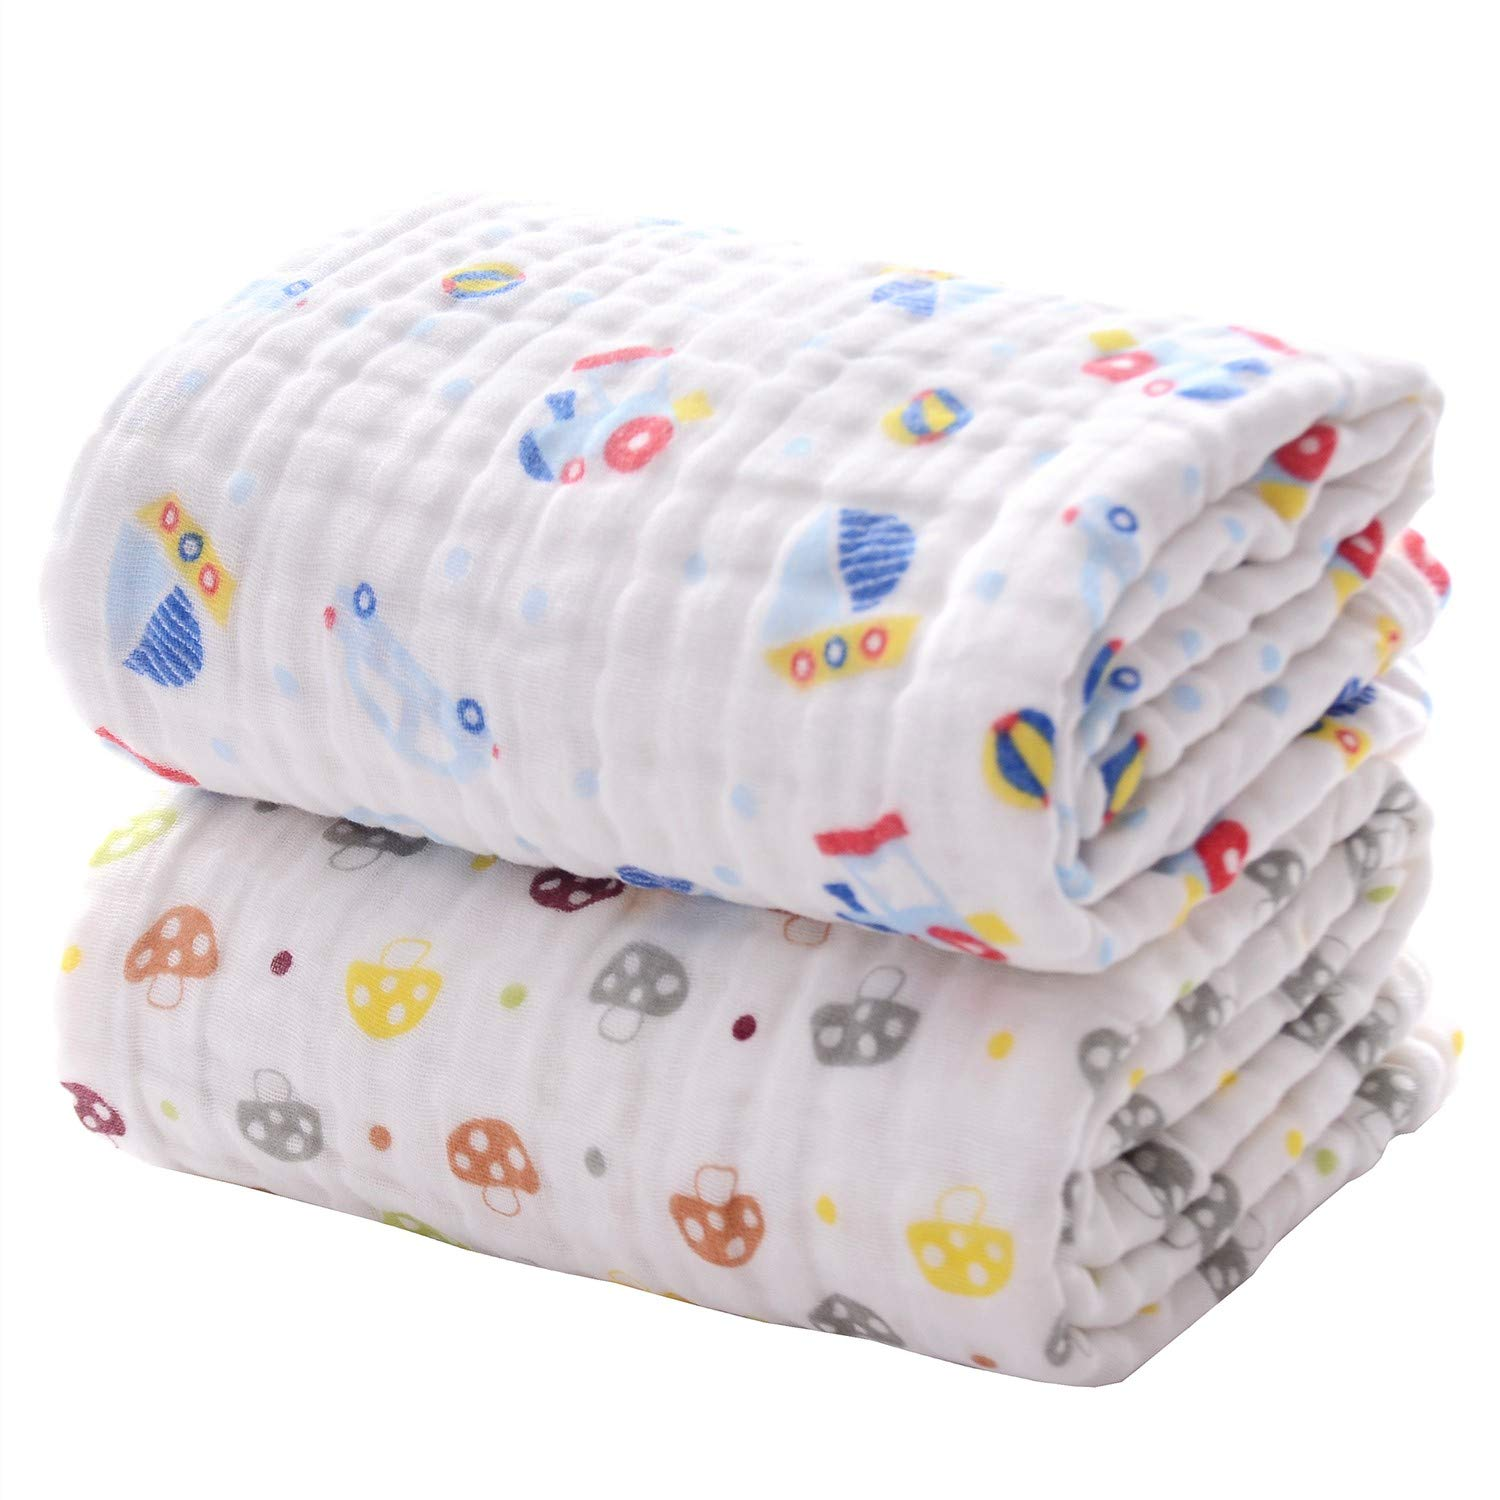 Multifunction Blankets Shower Towel for Newborn or Toddlers Set of 2 Baby Bath Towels Ultra Soft Super Absorbent Large Towels Wanshchan 6 Layer Gauze 41.5 x 41.5 Muslin Cotton Bath Towels